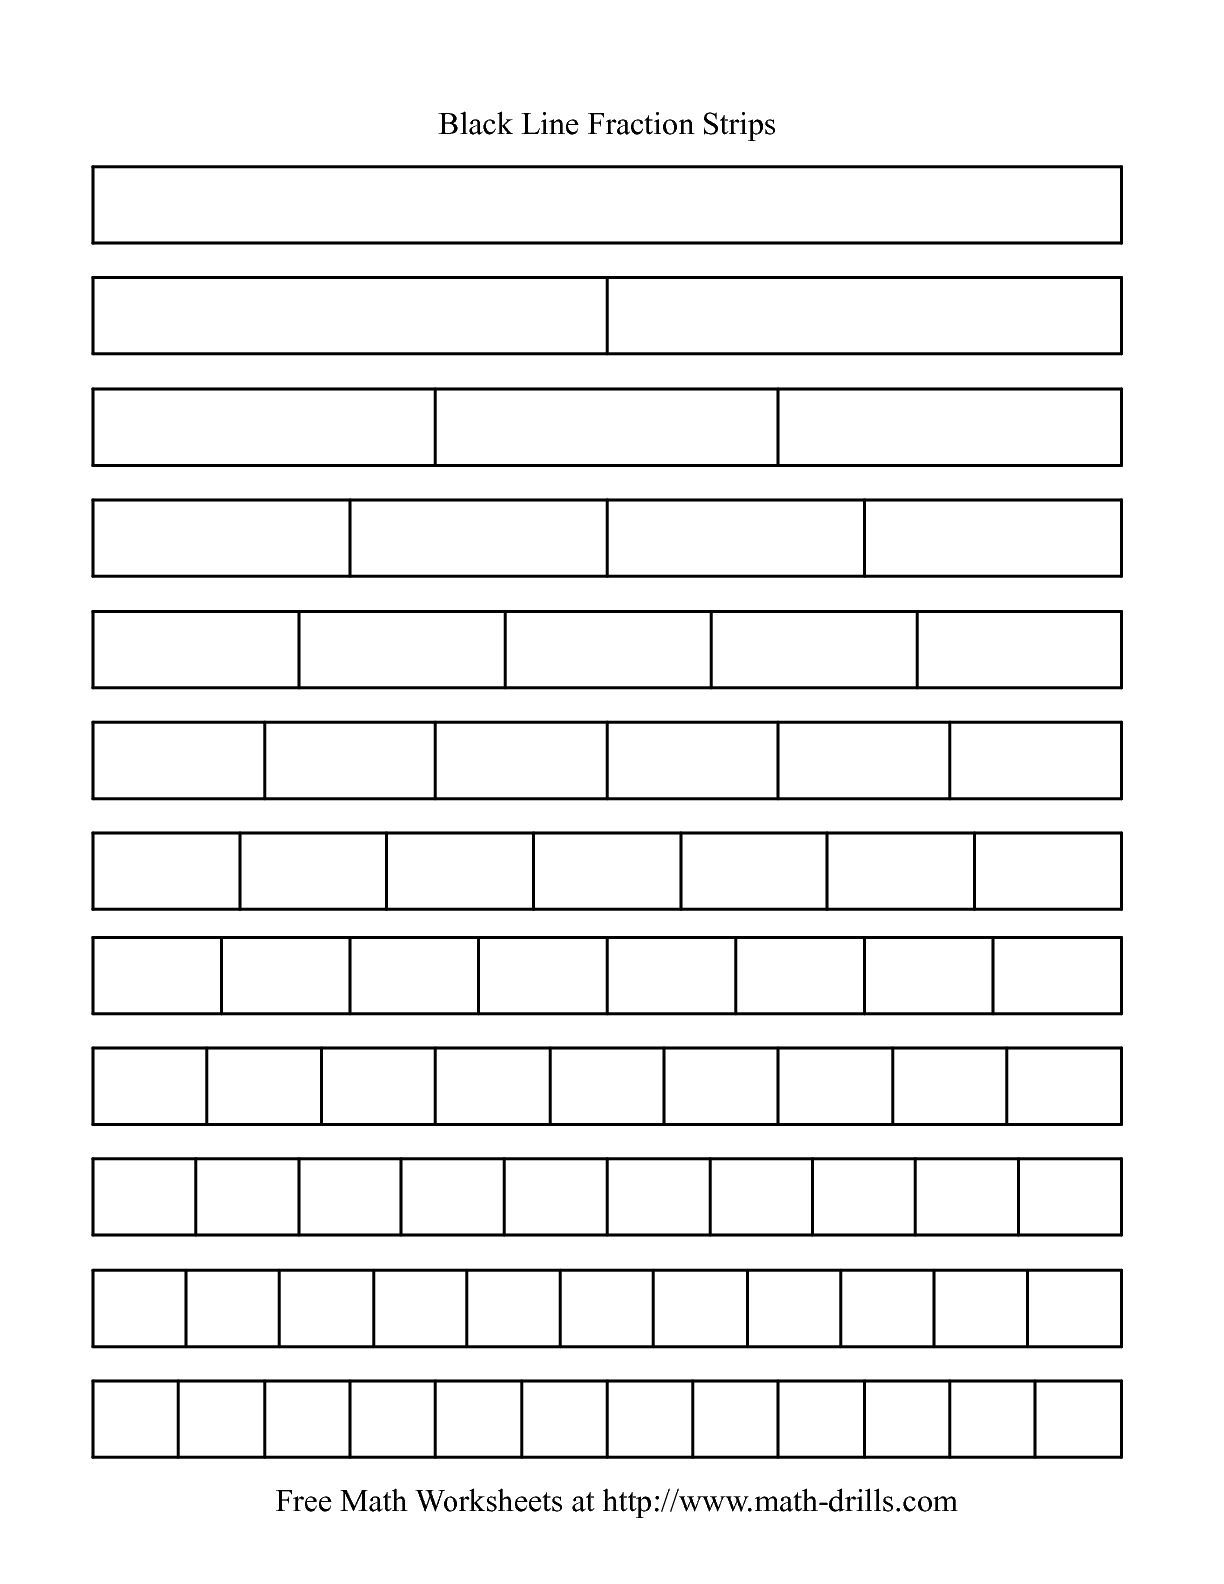 The Blackline Fraction Strips Unlabeled Math Worksheet